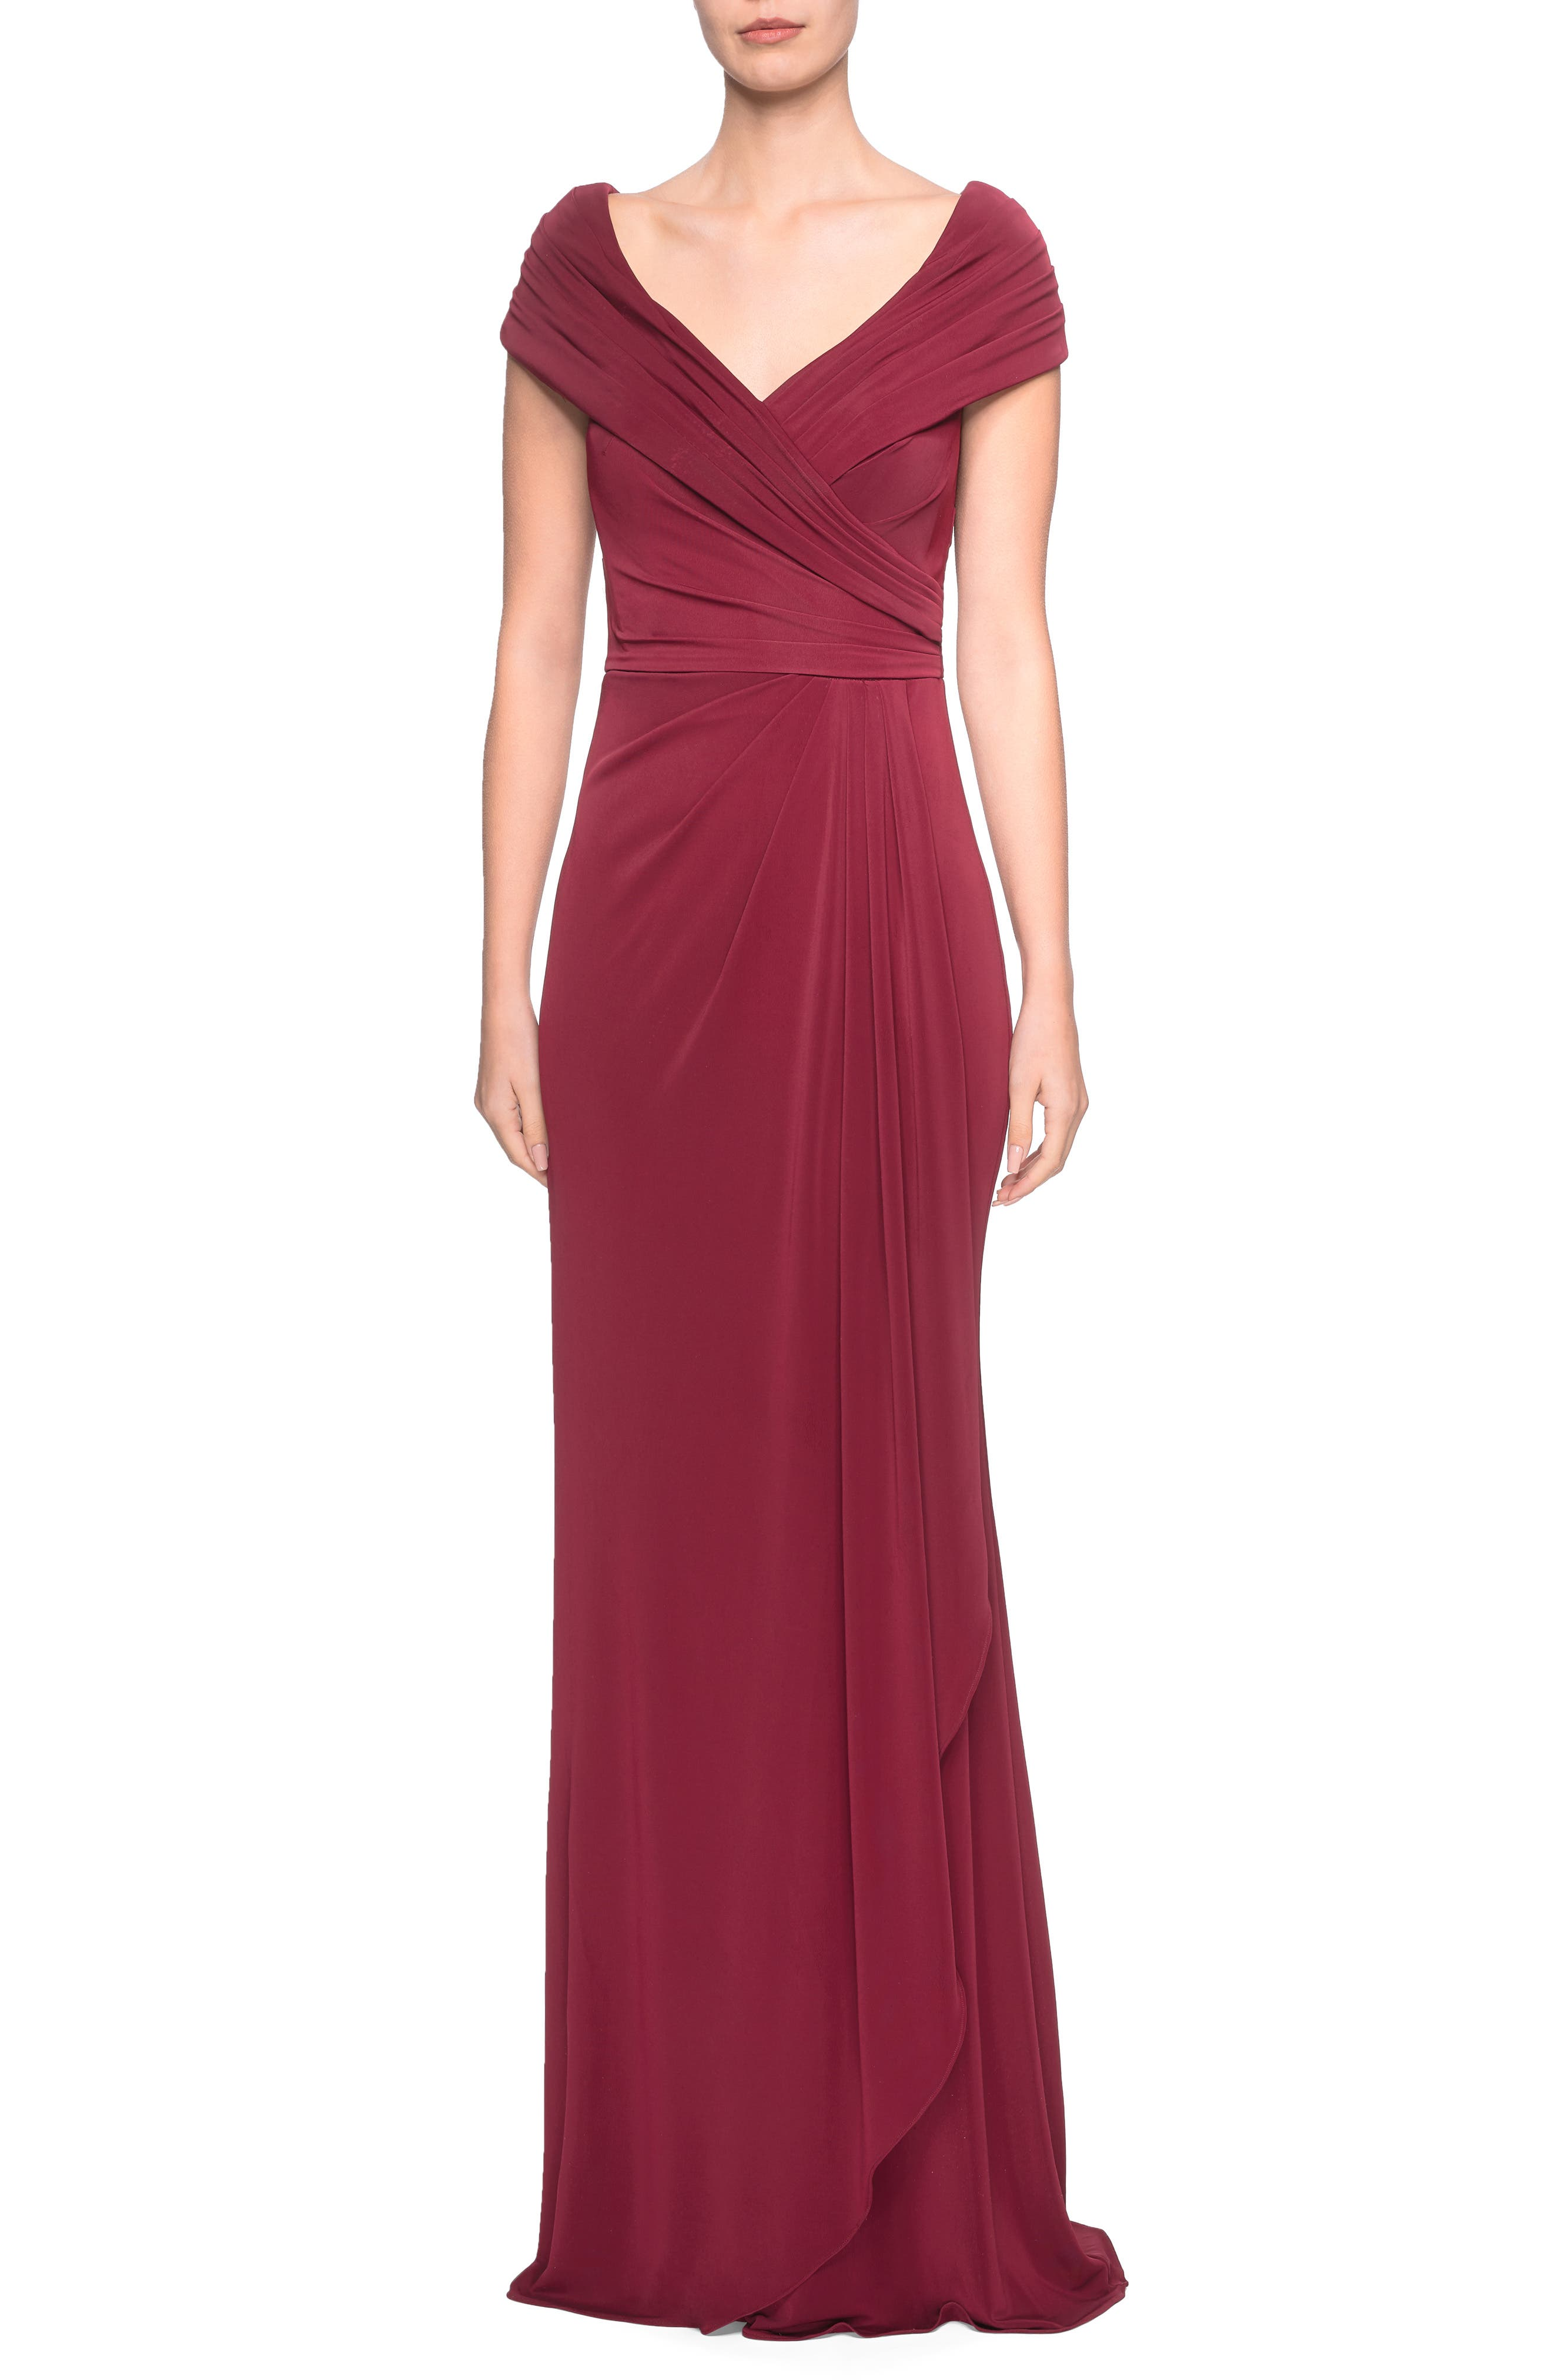 La Femme Ruched Jersey Gown, Burgundy